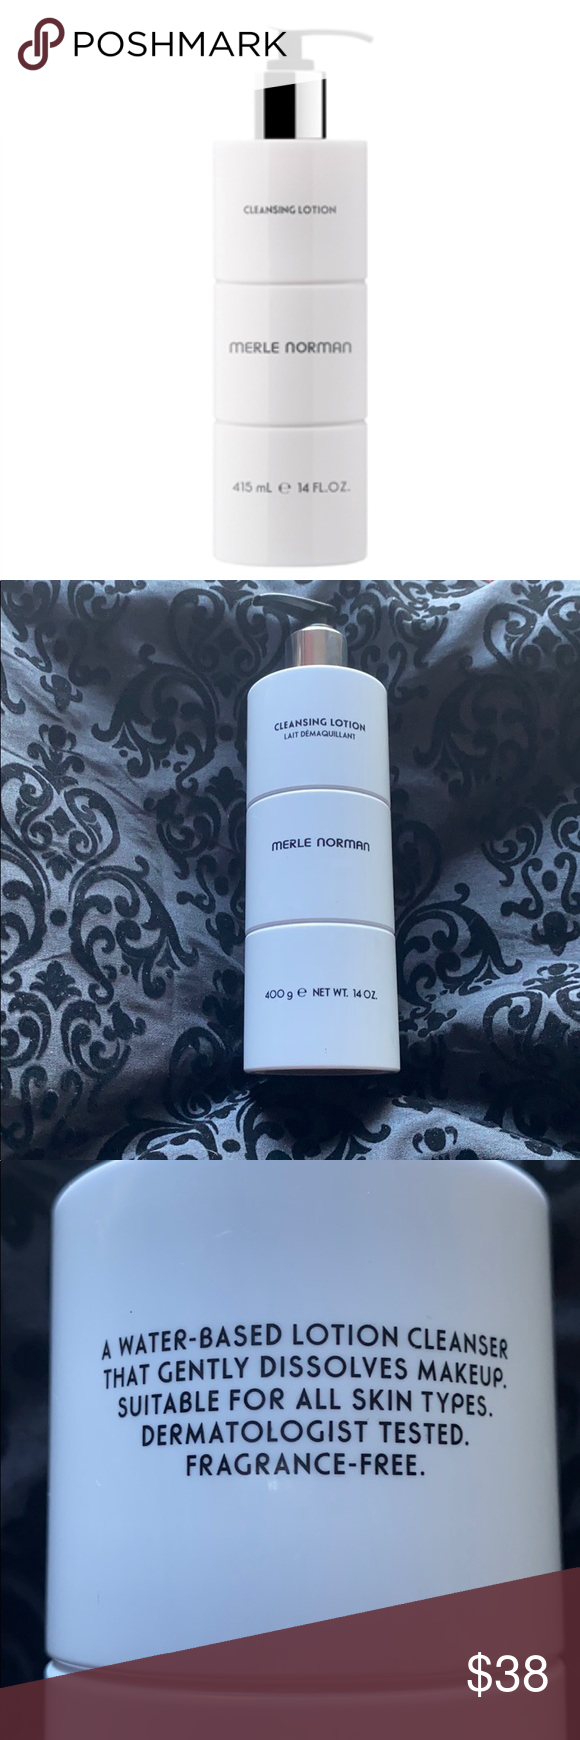 Merle Norman Cleansing Lotion For all skin types. An